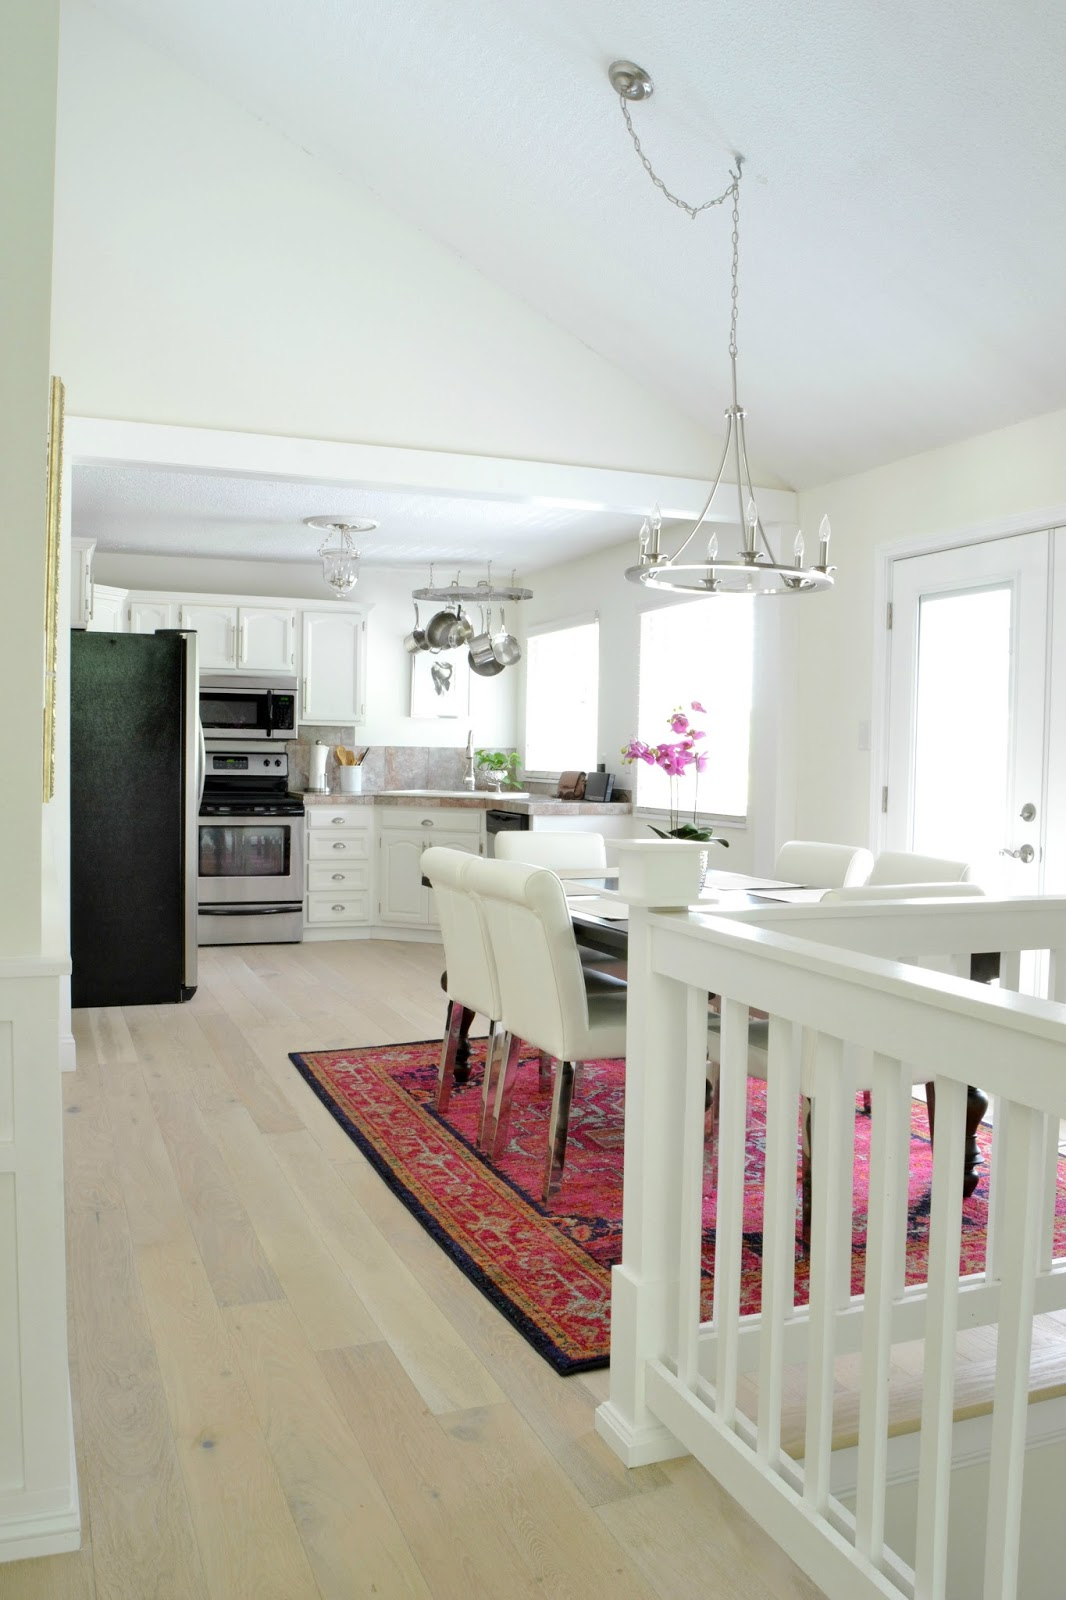 I ... - LiveLoveDIY: Our New White-Washed Hardwood Flooring (and Why We